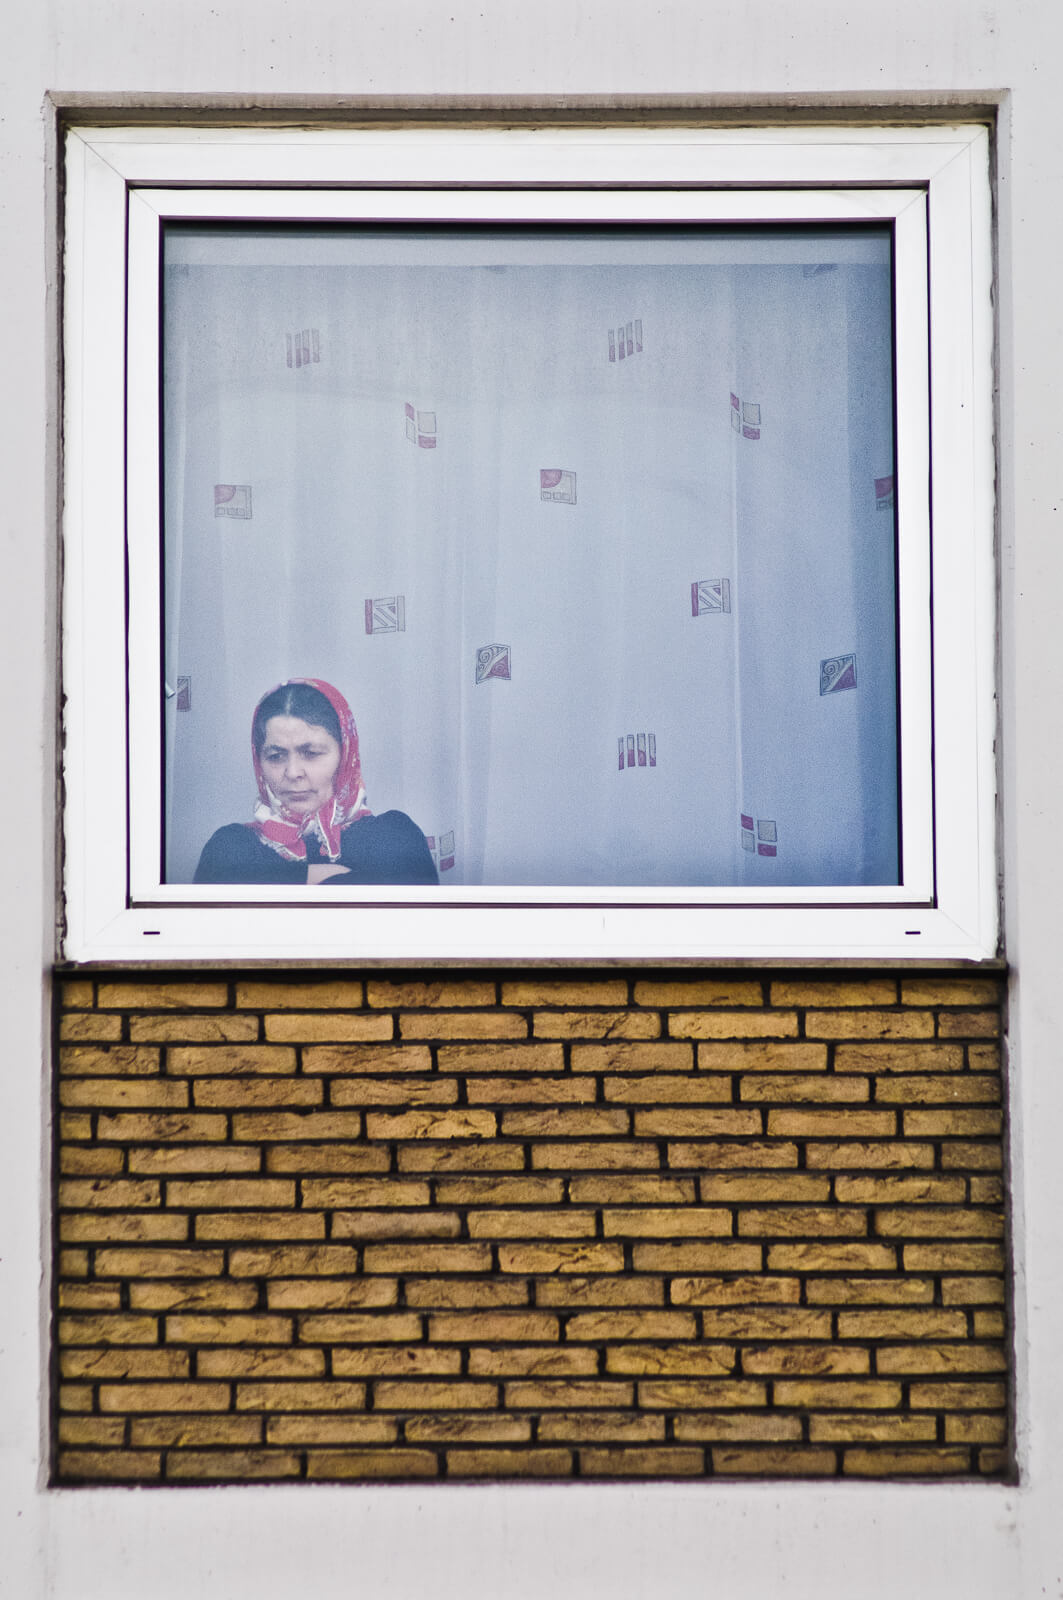 Woman wearing a headscarf standing behind a window